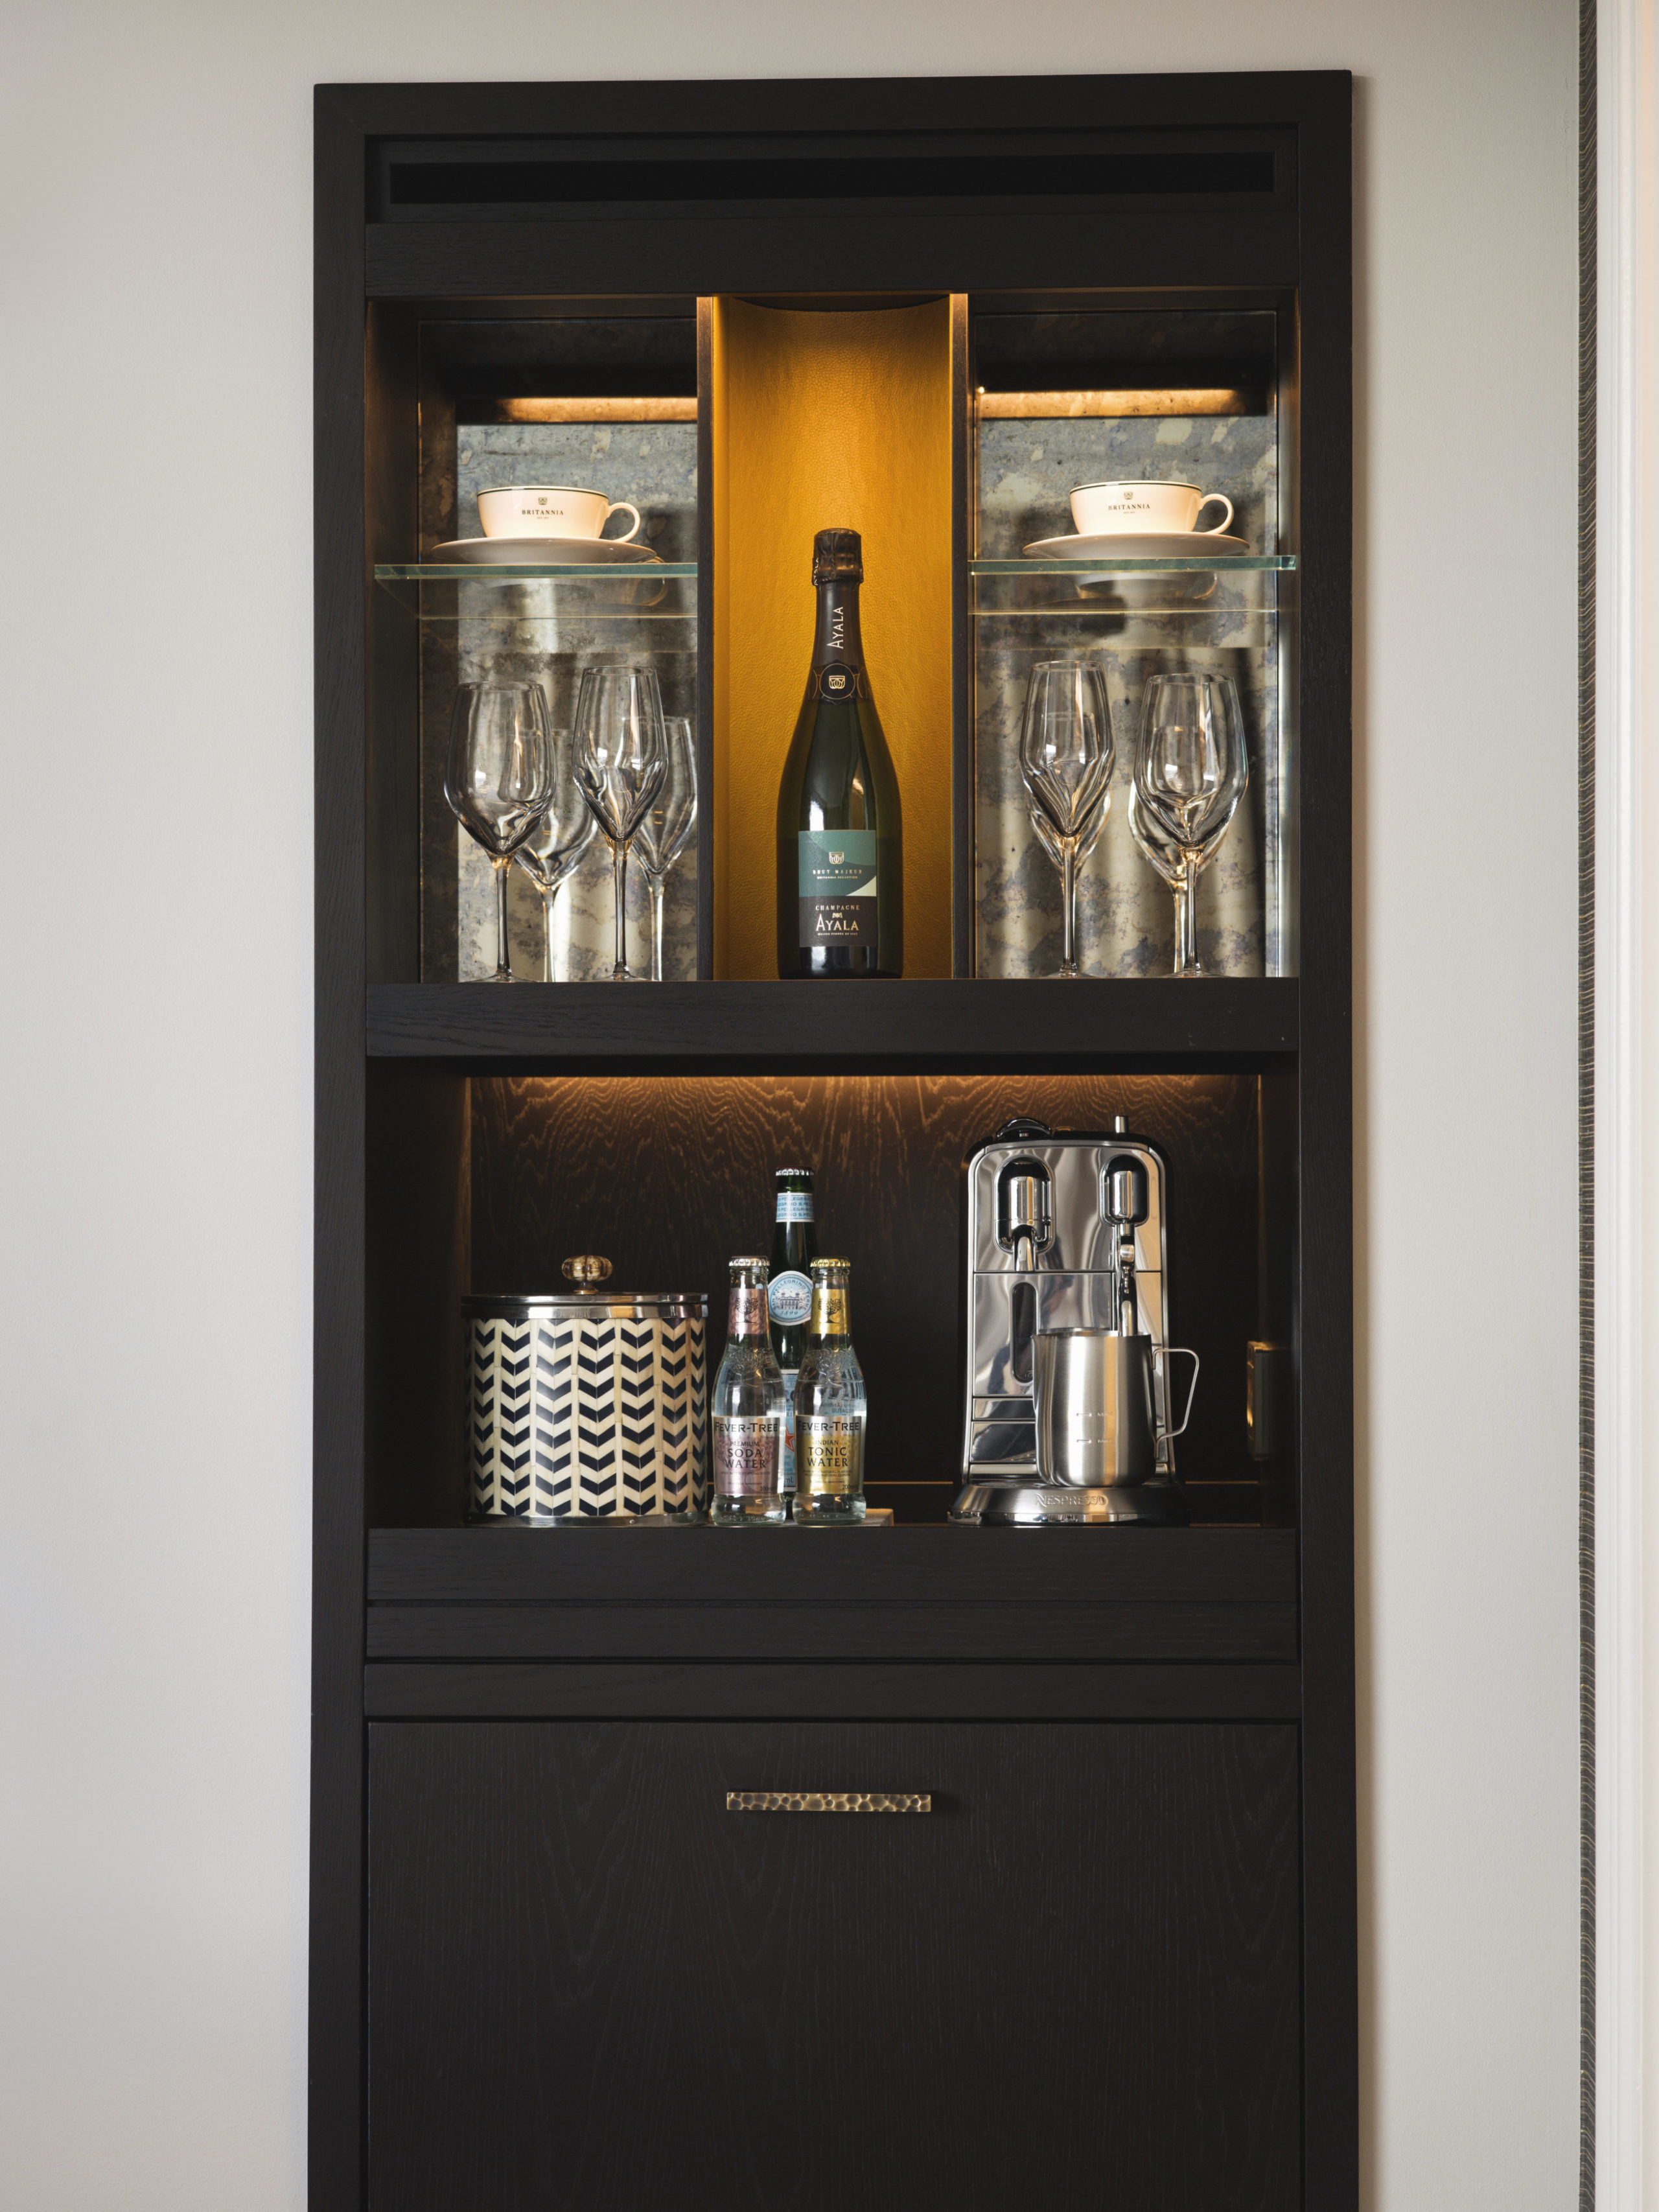 Britannia Hotel in Trondheim's Executive Suite styled by Metropolis Interior Architects. Bar and amenities in iving room.